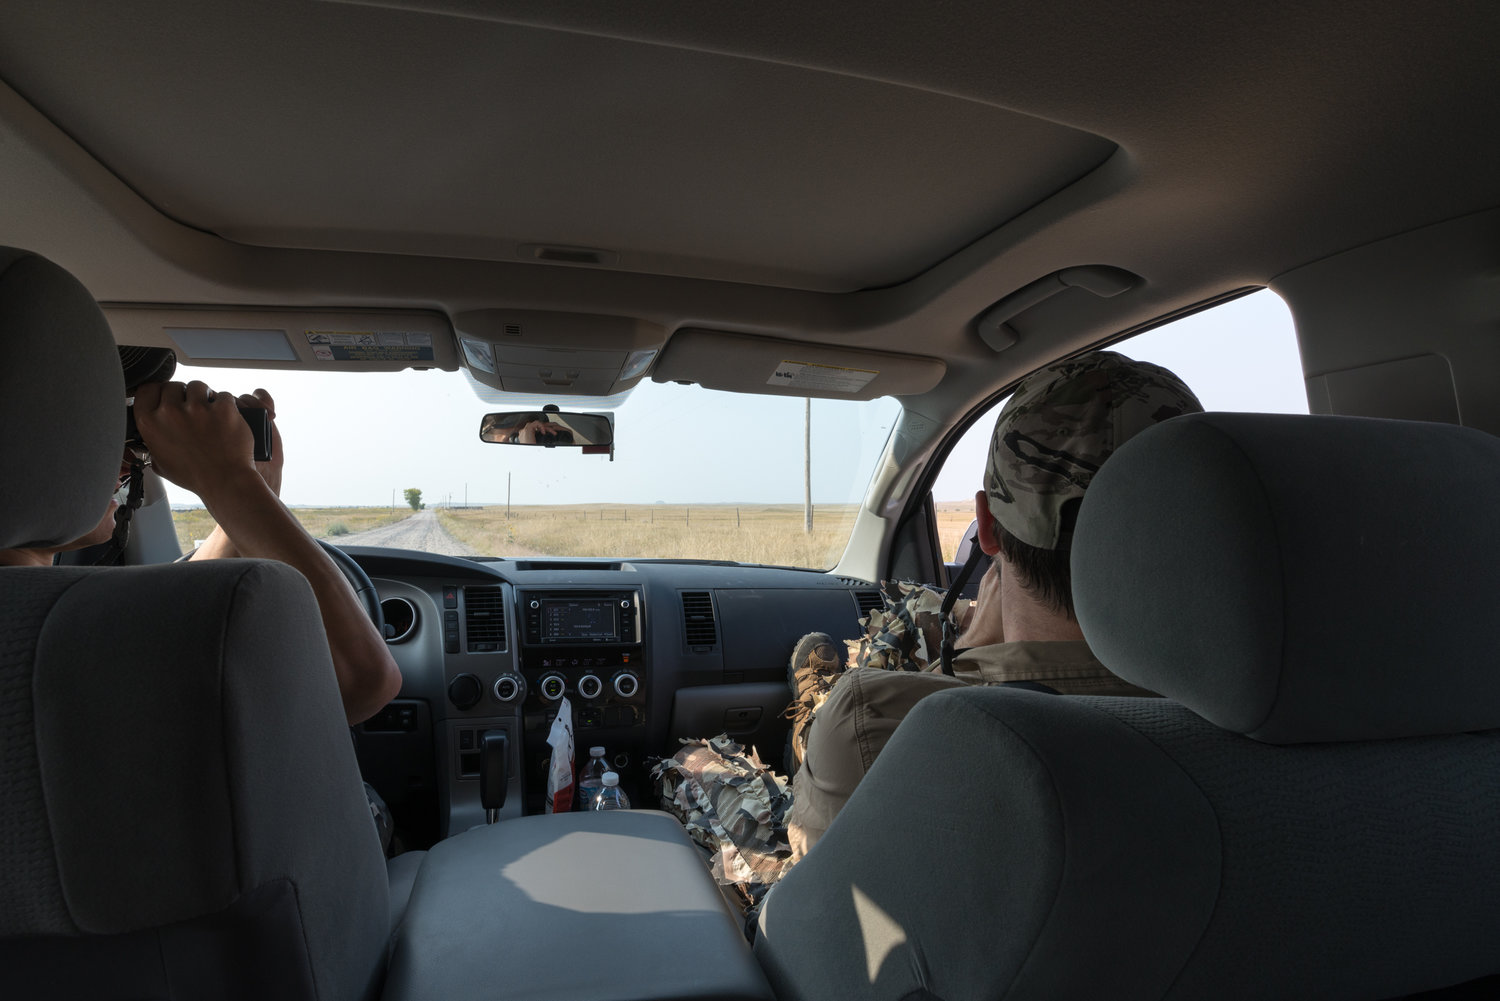 A common theme inside the vehicle as we stopped frequently to glass for antelope.